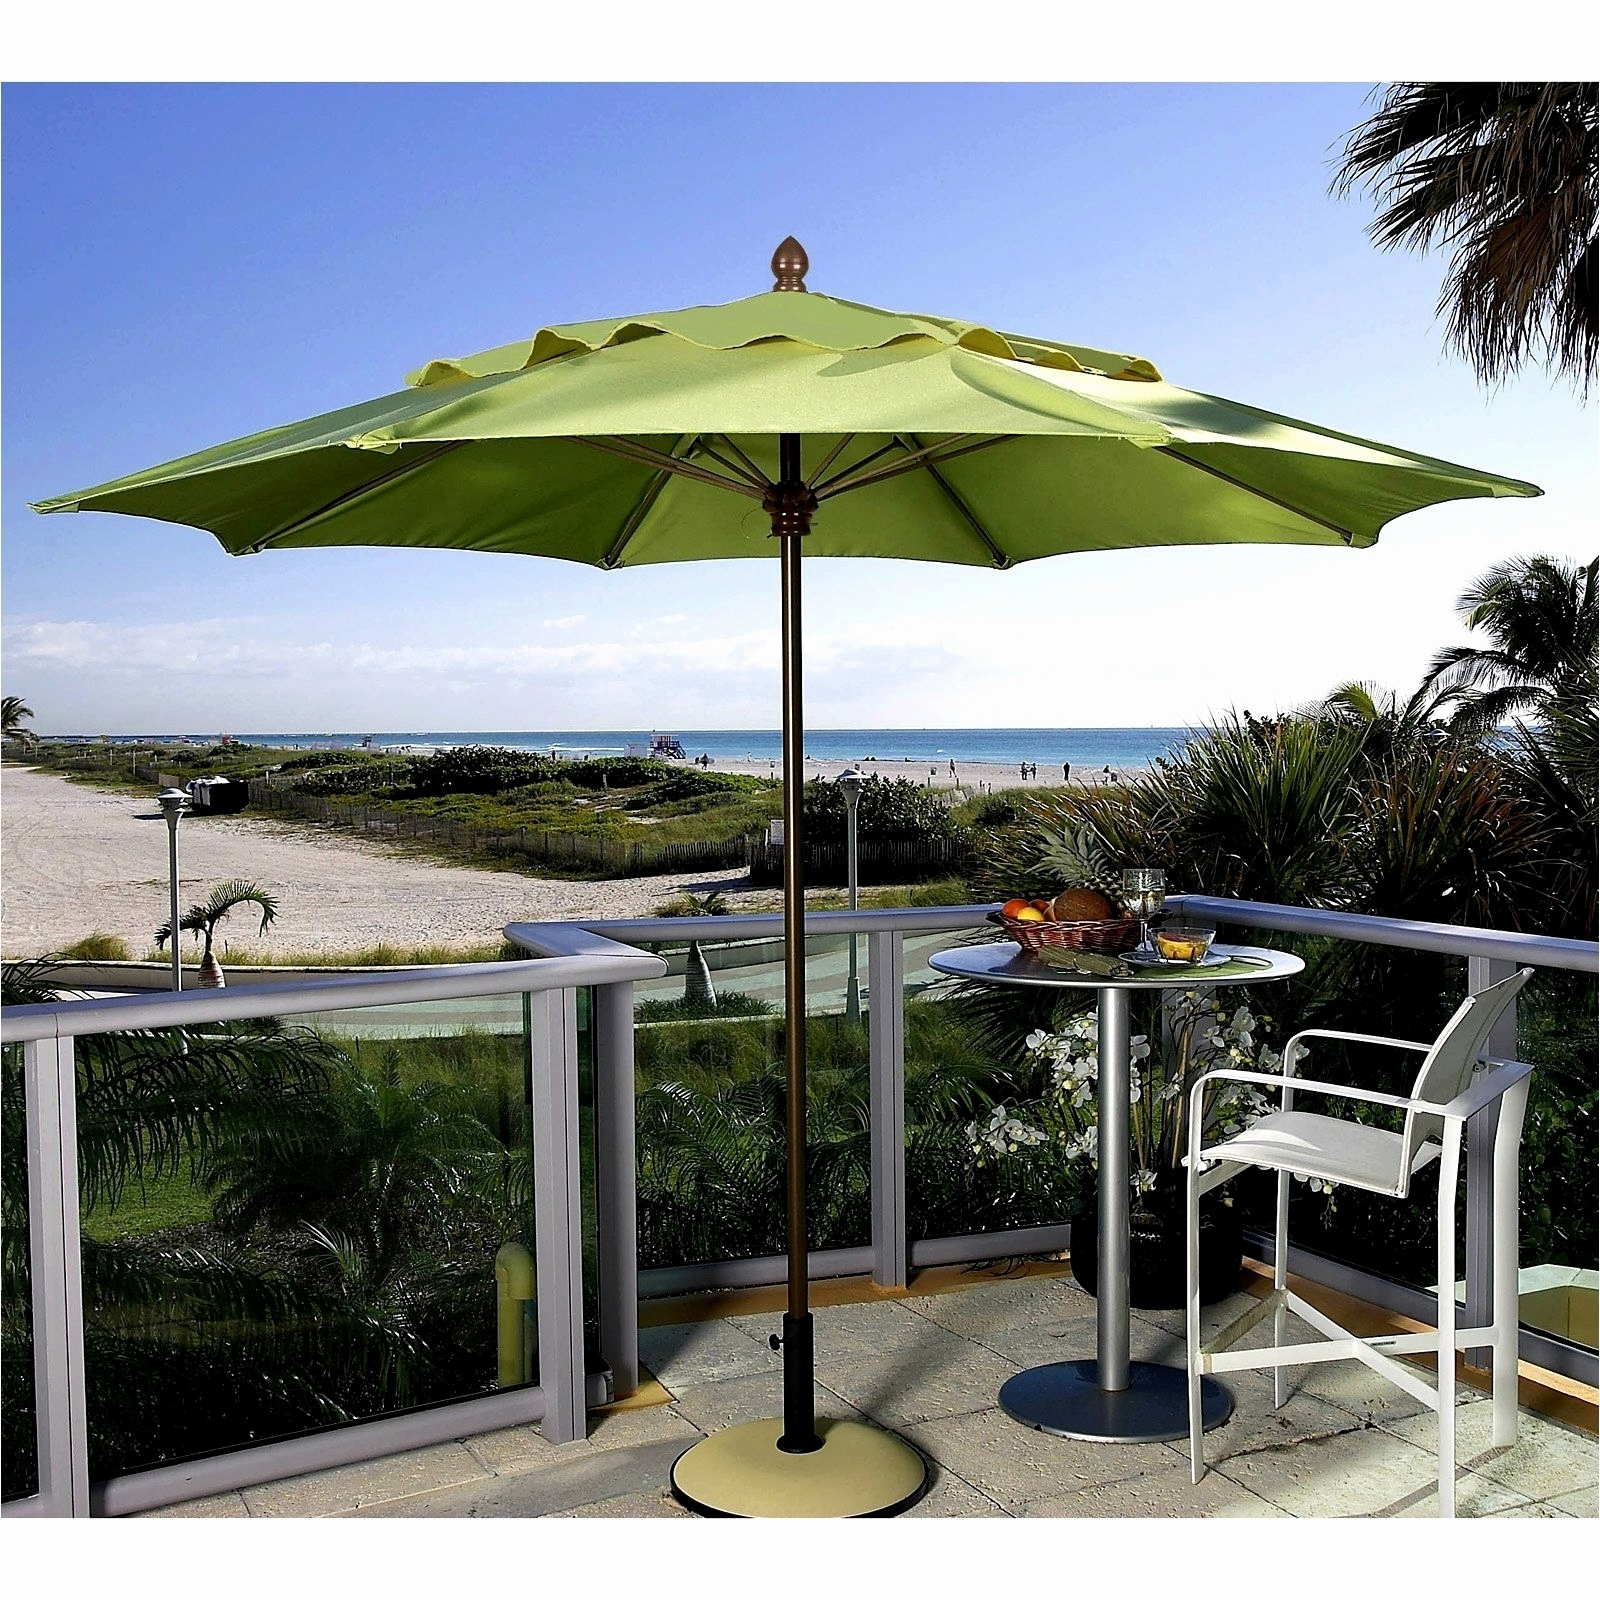 Famous Lovely Ideas Outdoor Umbrella Costco Ikea Patio Umbrella – Best Regarding Patio Umbrellas At Costco (View 10 of 20)